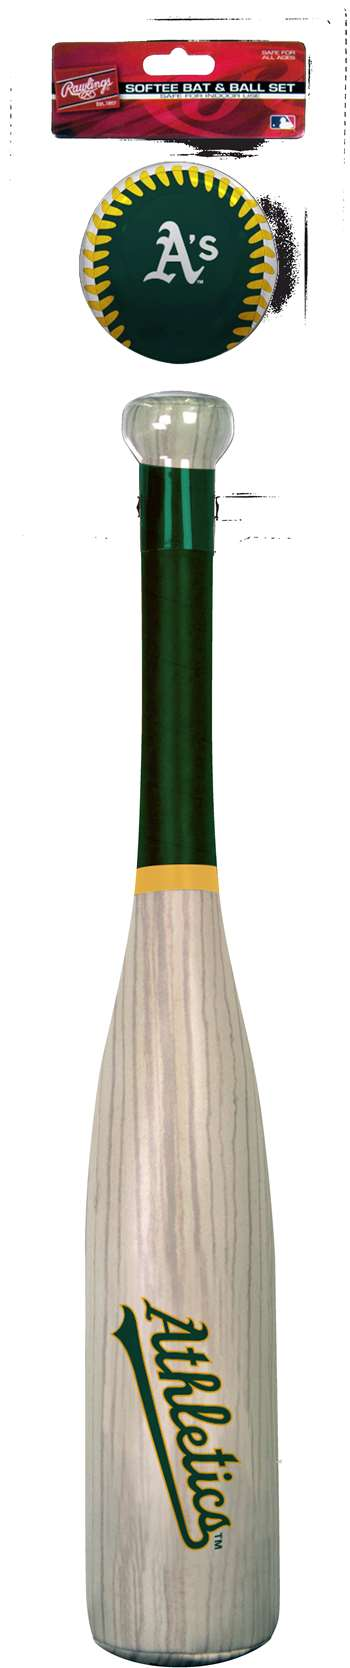 MLB Oakland Athletics Grand Slam Softee Baseball Bat and Ball Set (Wood Grain)